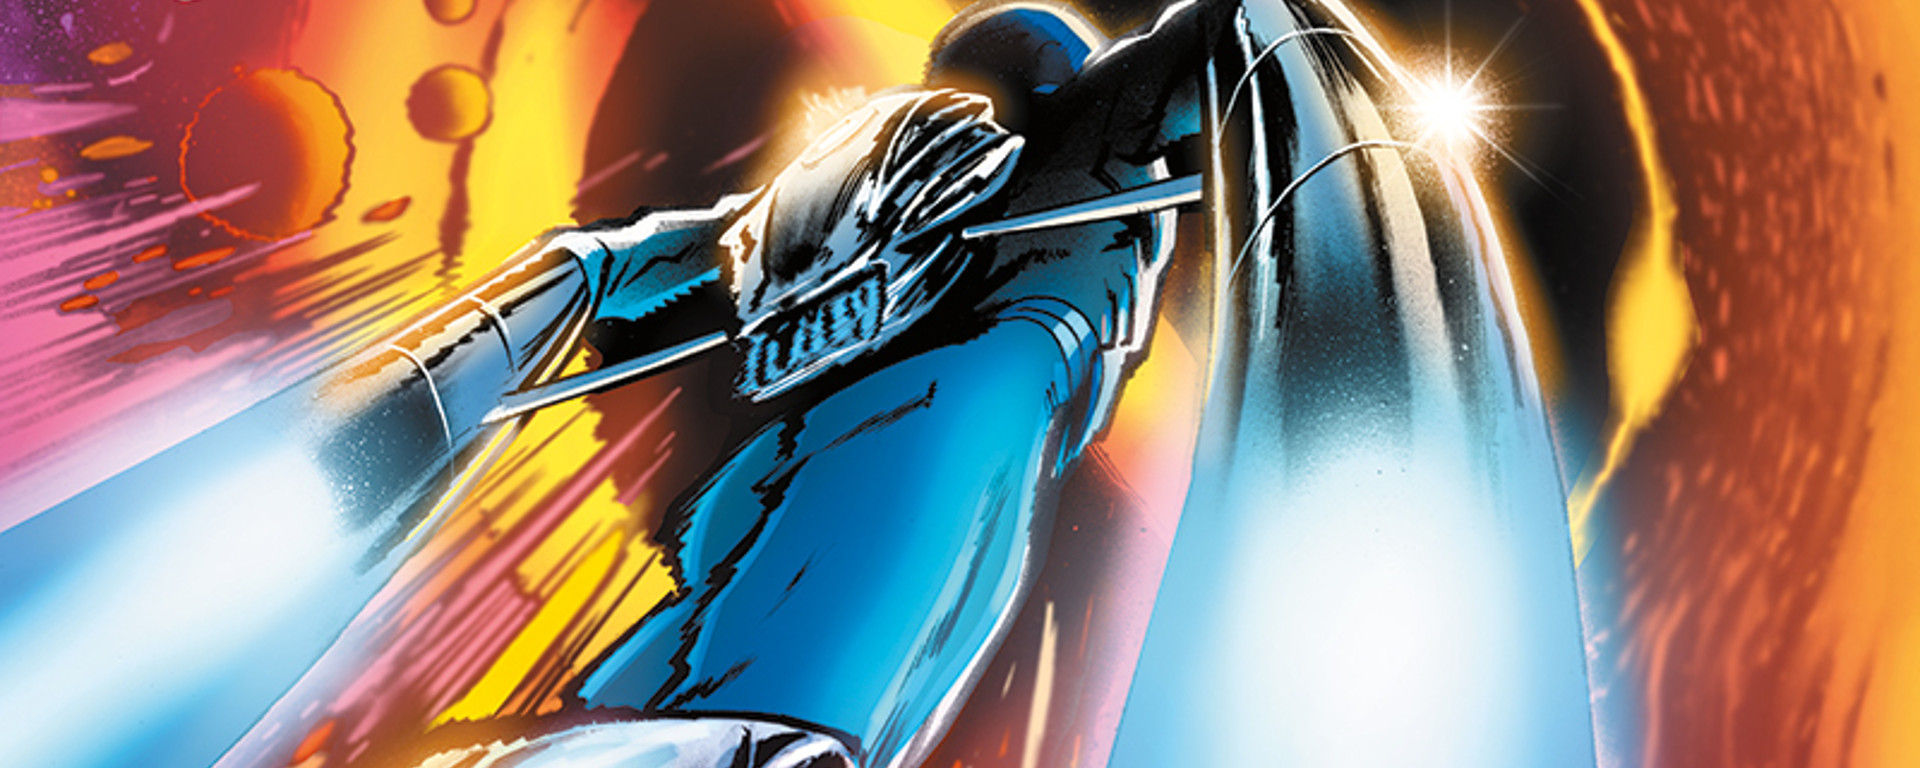 The Blue Flame #1 Header